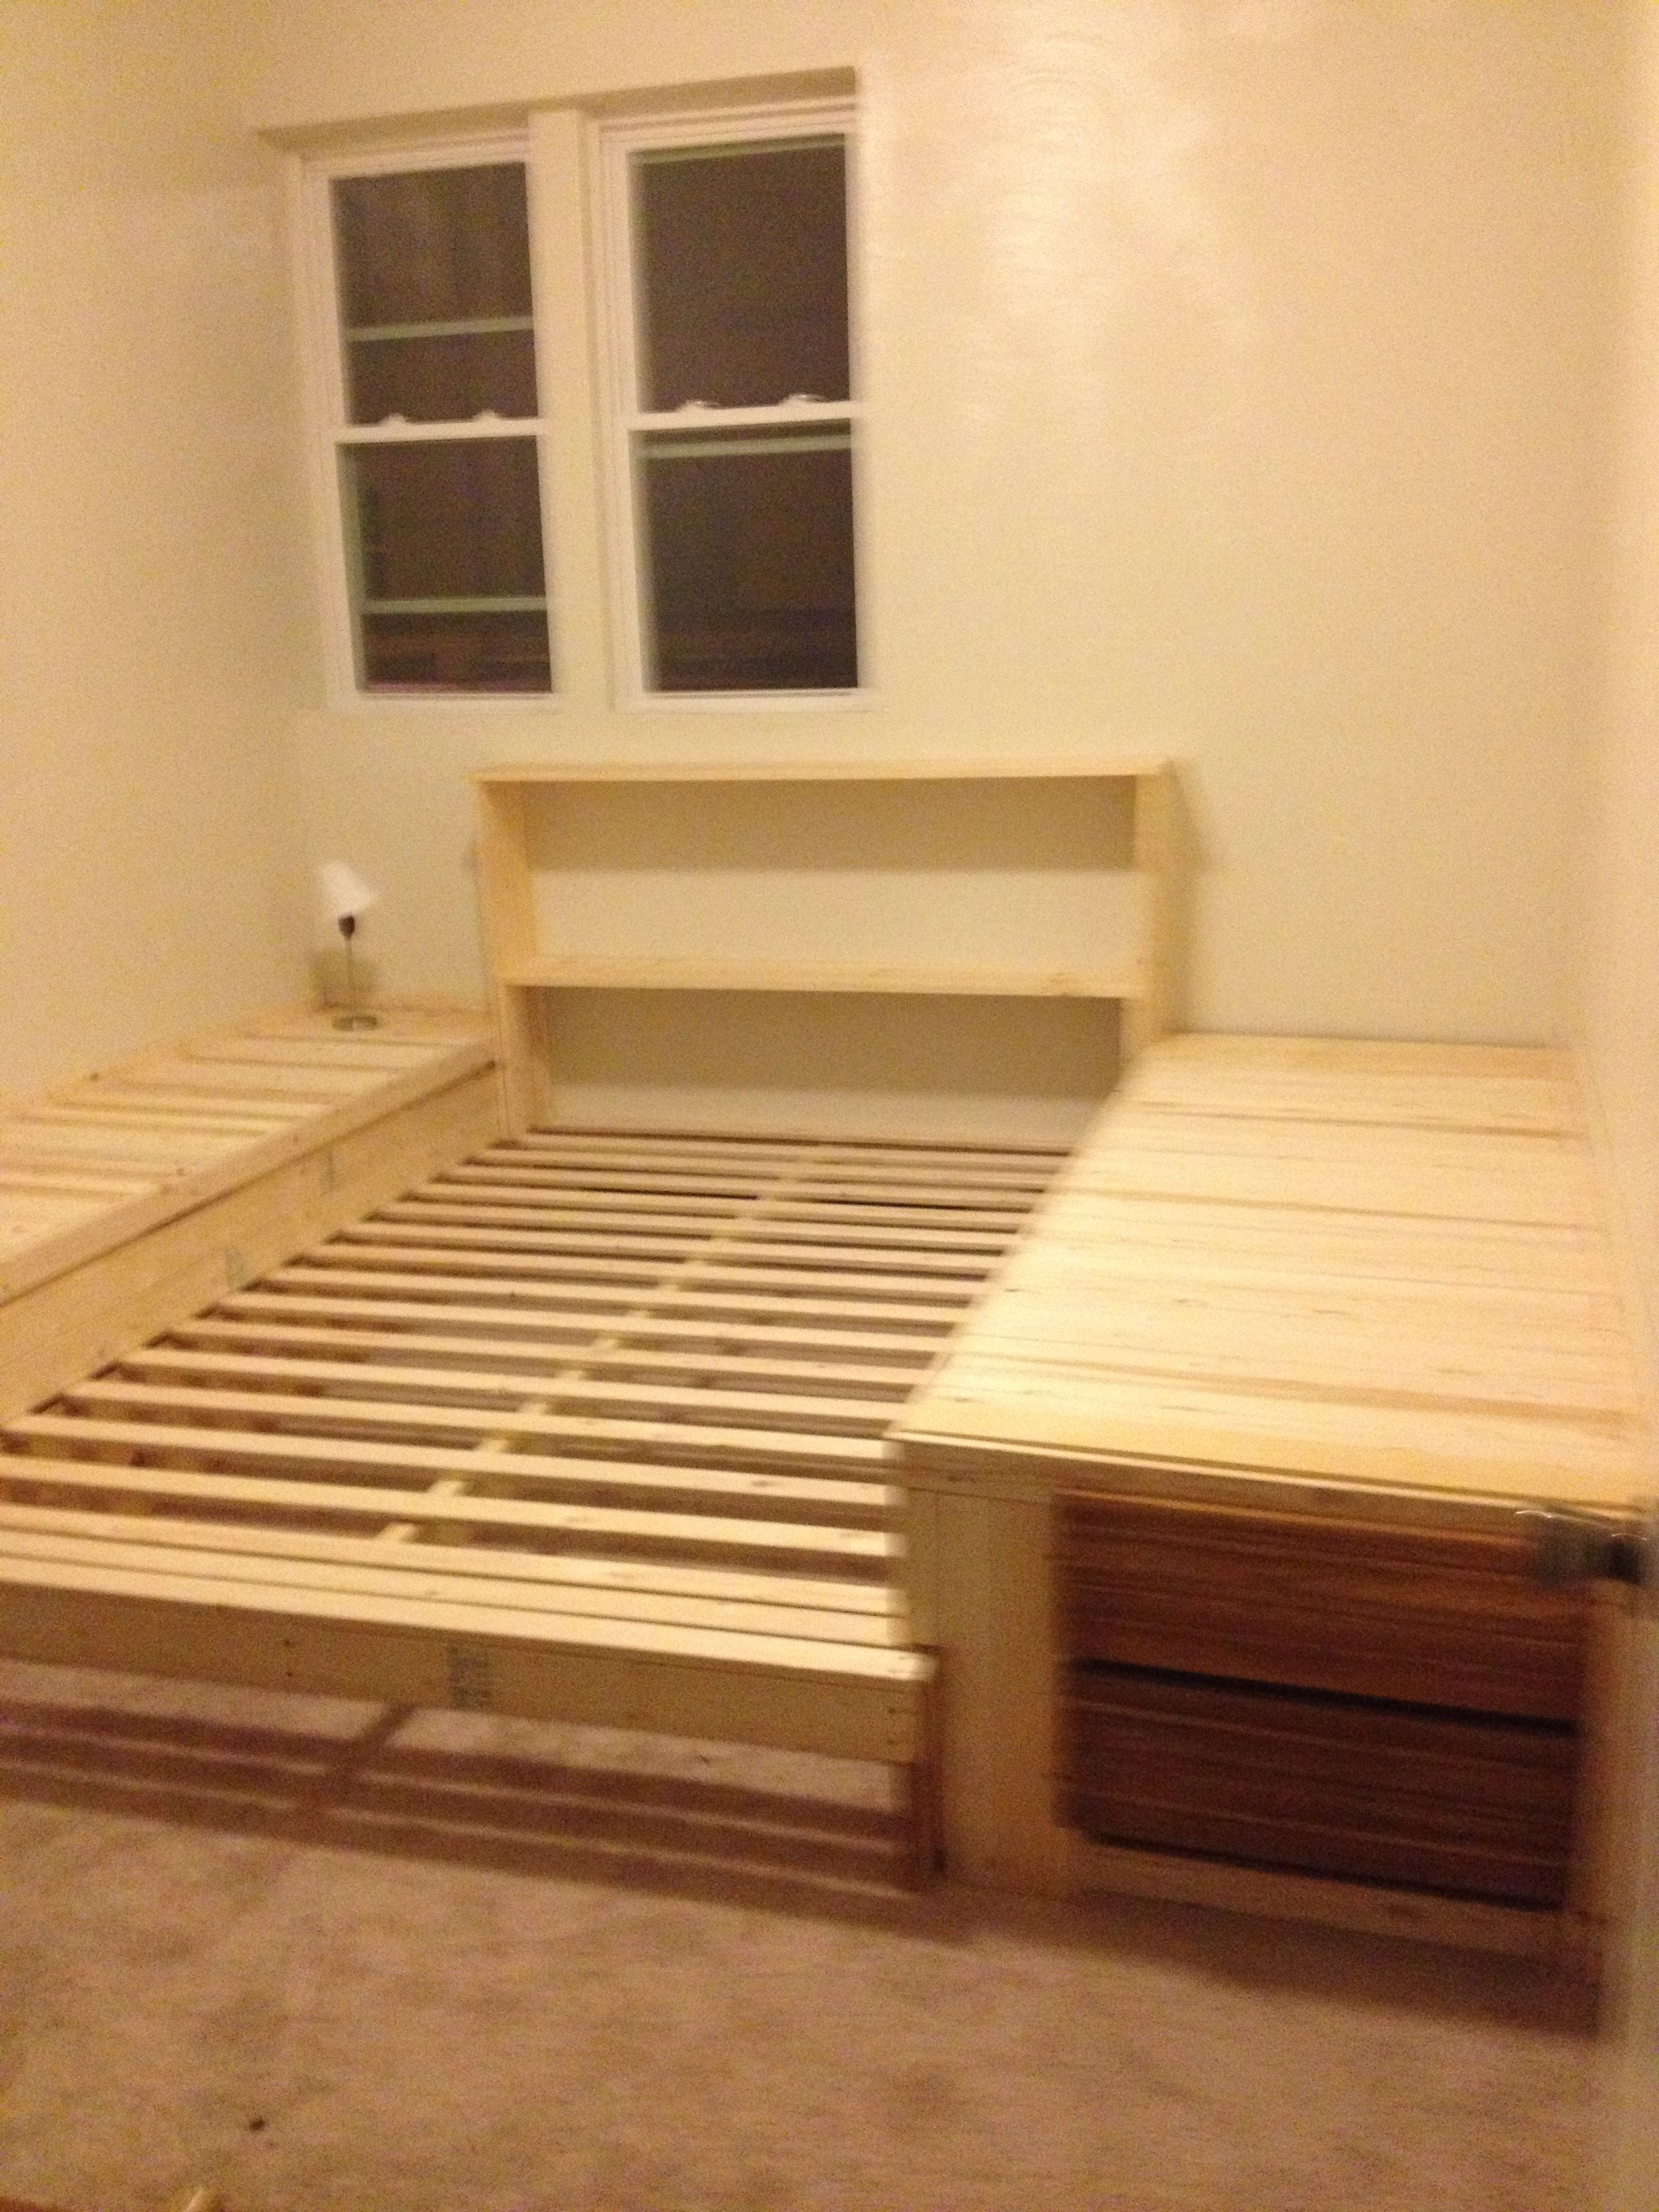 Diy Platform Bed Base Sunken Platform Bed Projects Sunken Bed Diy Bed Frame